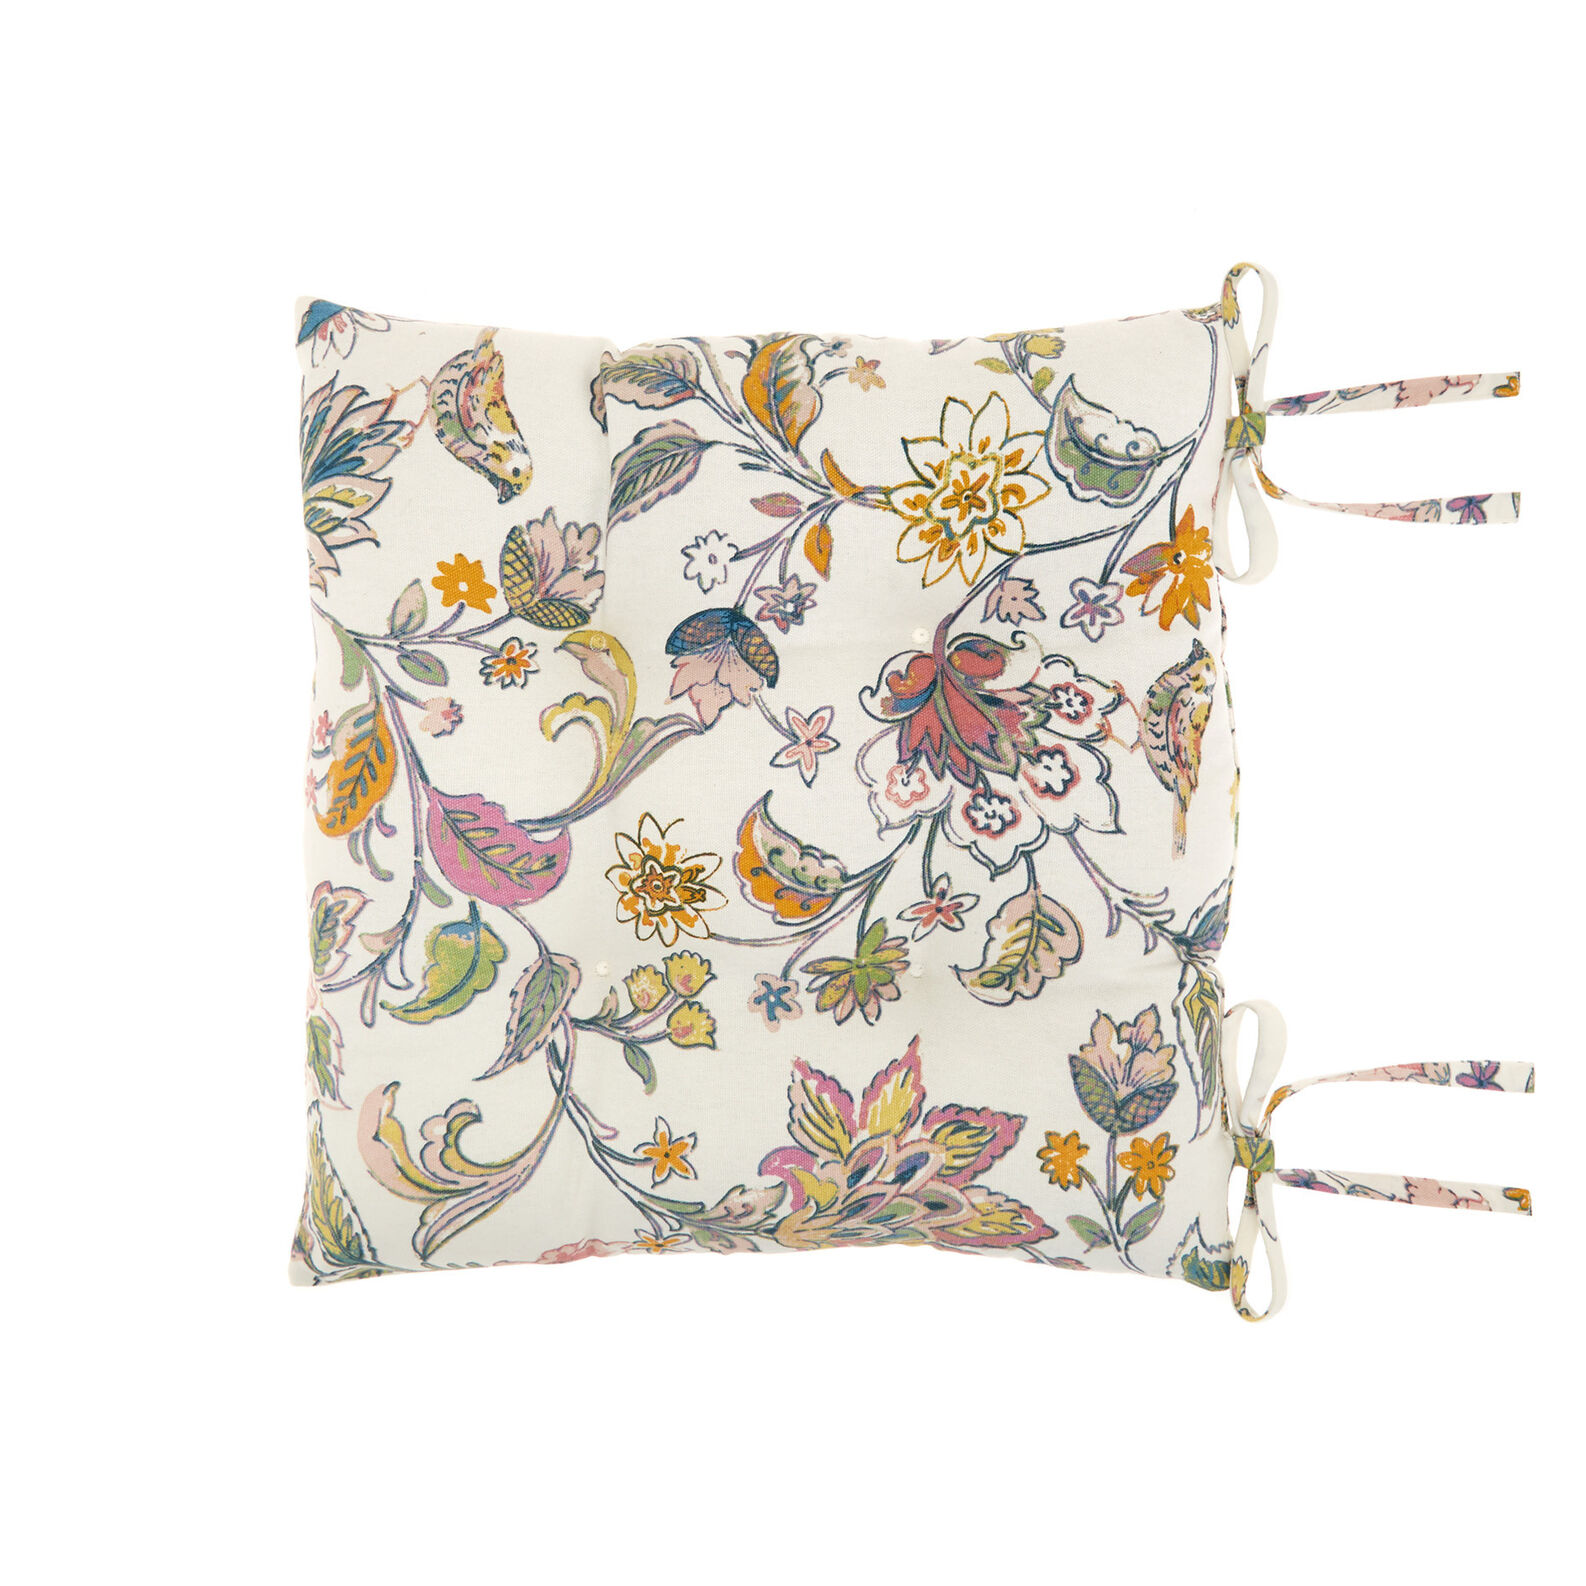 Kitchen seat pad in 100% cotton with floral print